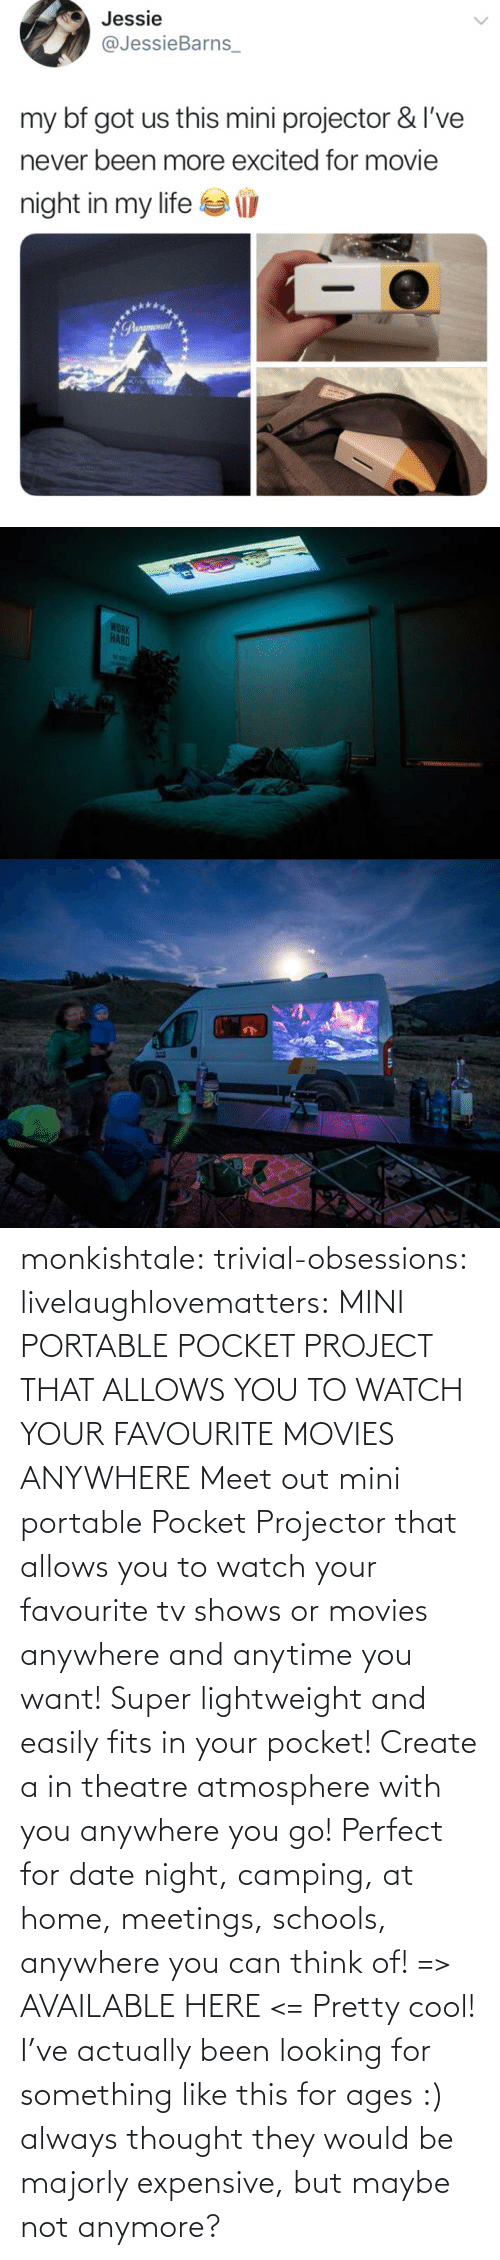 products: monkishtale: trivial-obsessions:   livelaughlovematters:   MINI PORTABLE POCKET PROJECT THAT ALLOWS YOU TO WATCH YOUR FAVOURITE MOVIES ANYWHERE Meet out mini portable Pocket Projector that allows you to watch your favourite tv shows or movies anywhere and anytime you want! Super lightweight and easily fits in your pocket! Create a in theatre atmosphere with you anywhere you go! Perfect for date night, camping, at home, meetings, schools, anywhere you can think of! => AVAILABLE HERE <=    Pretty cool!    I've actually been looking for something like this for ages :) always thought they would be majorly expensive, but maybe not anymore?